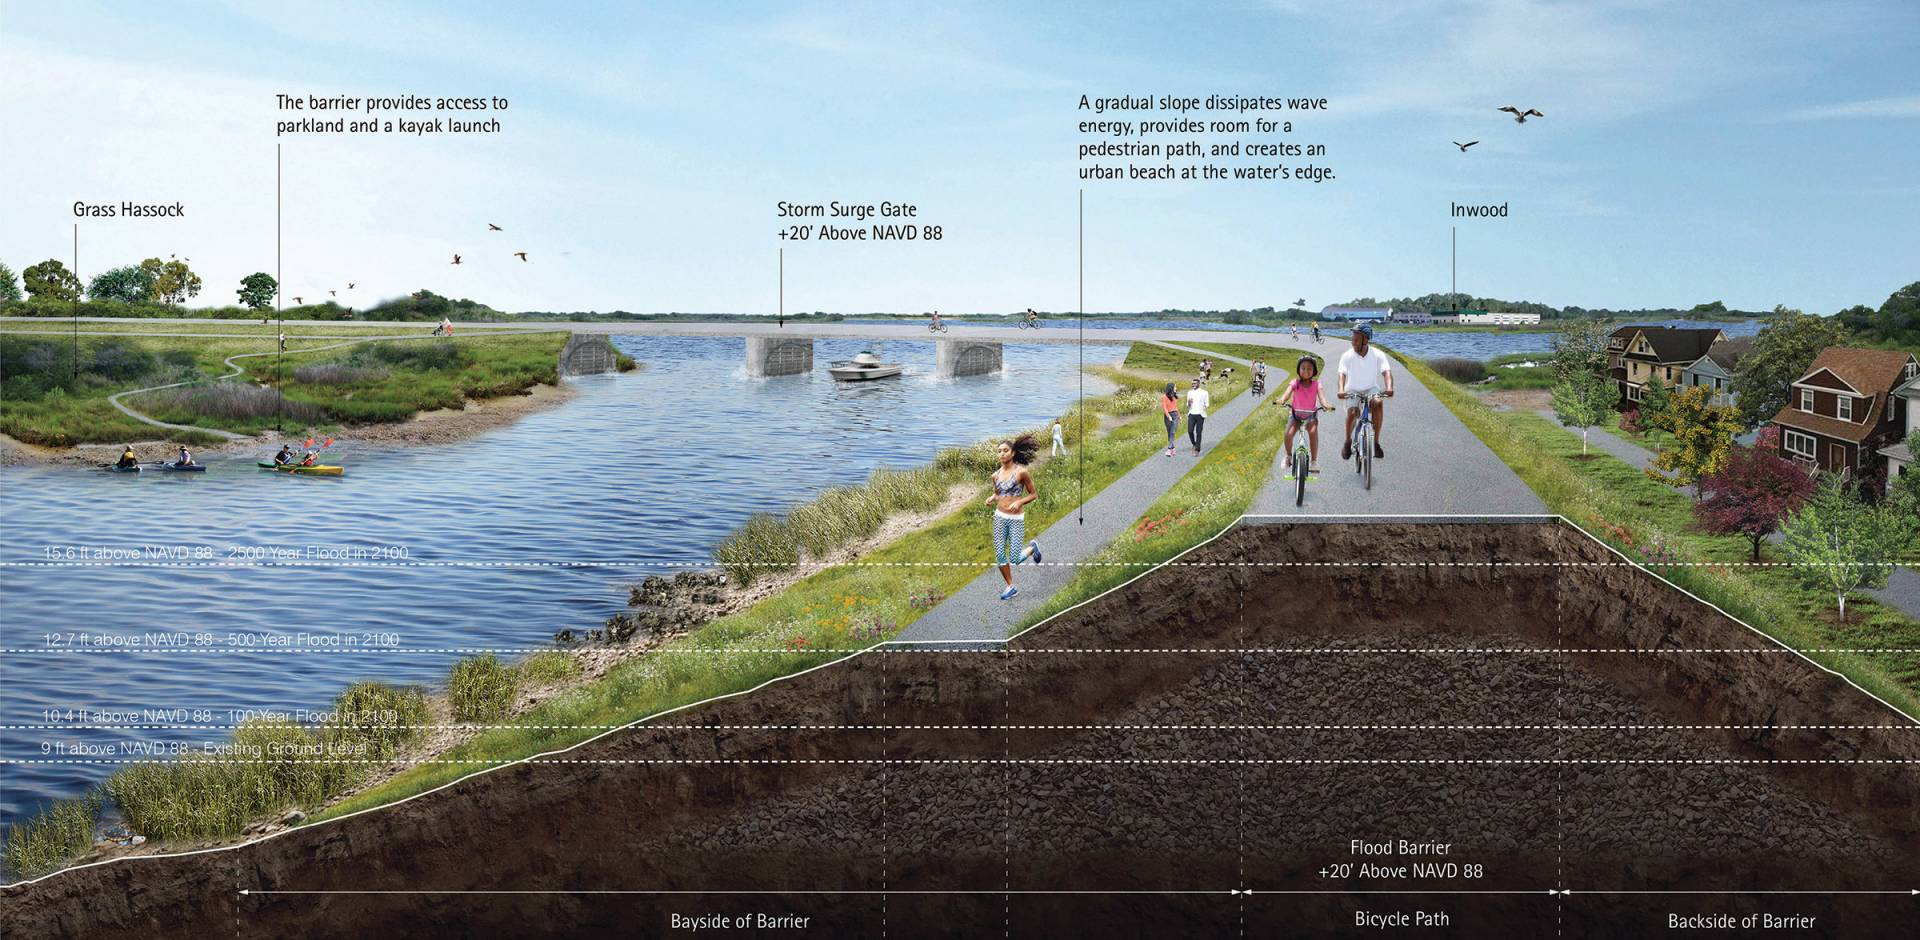 Diagram of proposed storm surge barrier at Jamaica Bay